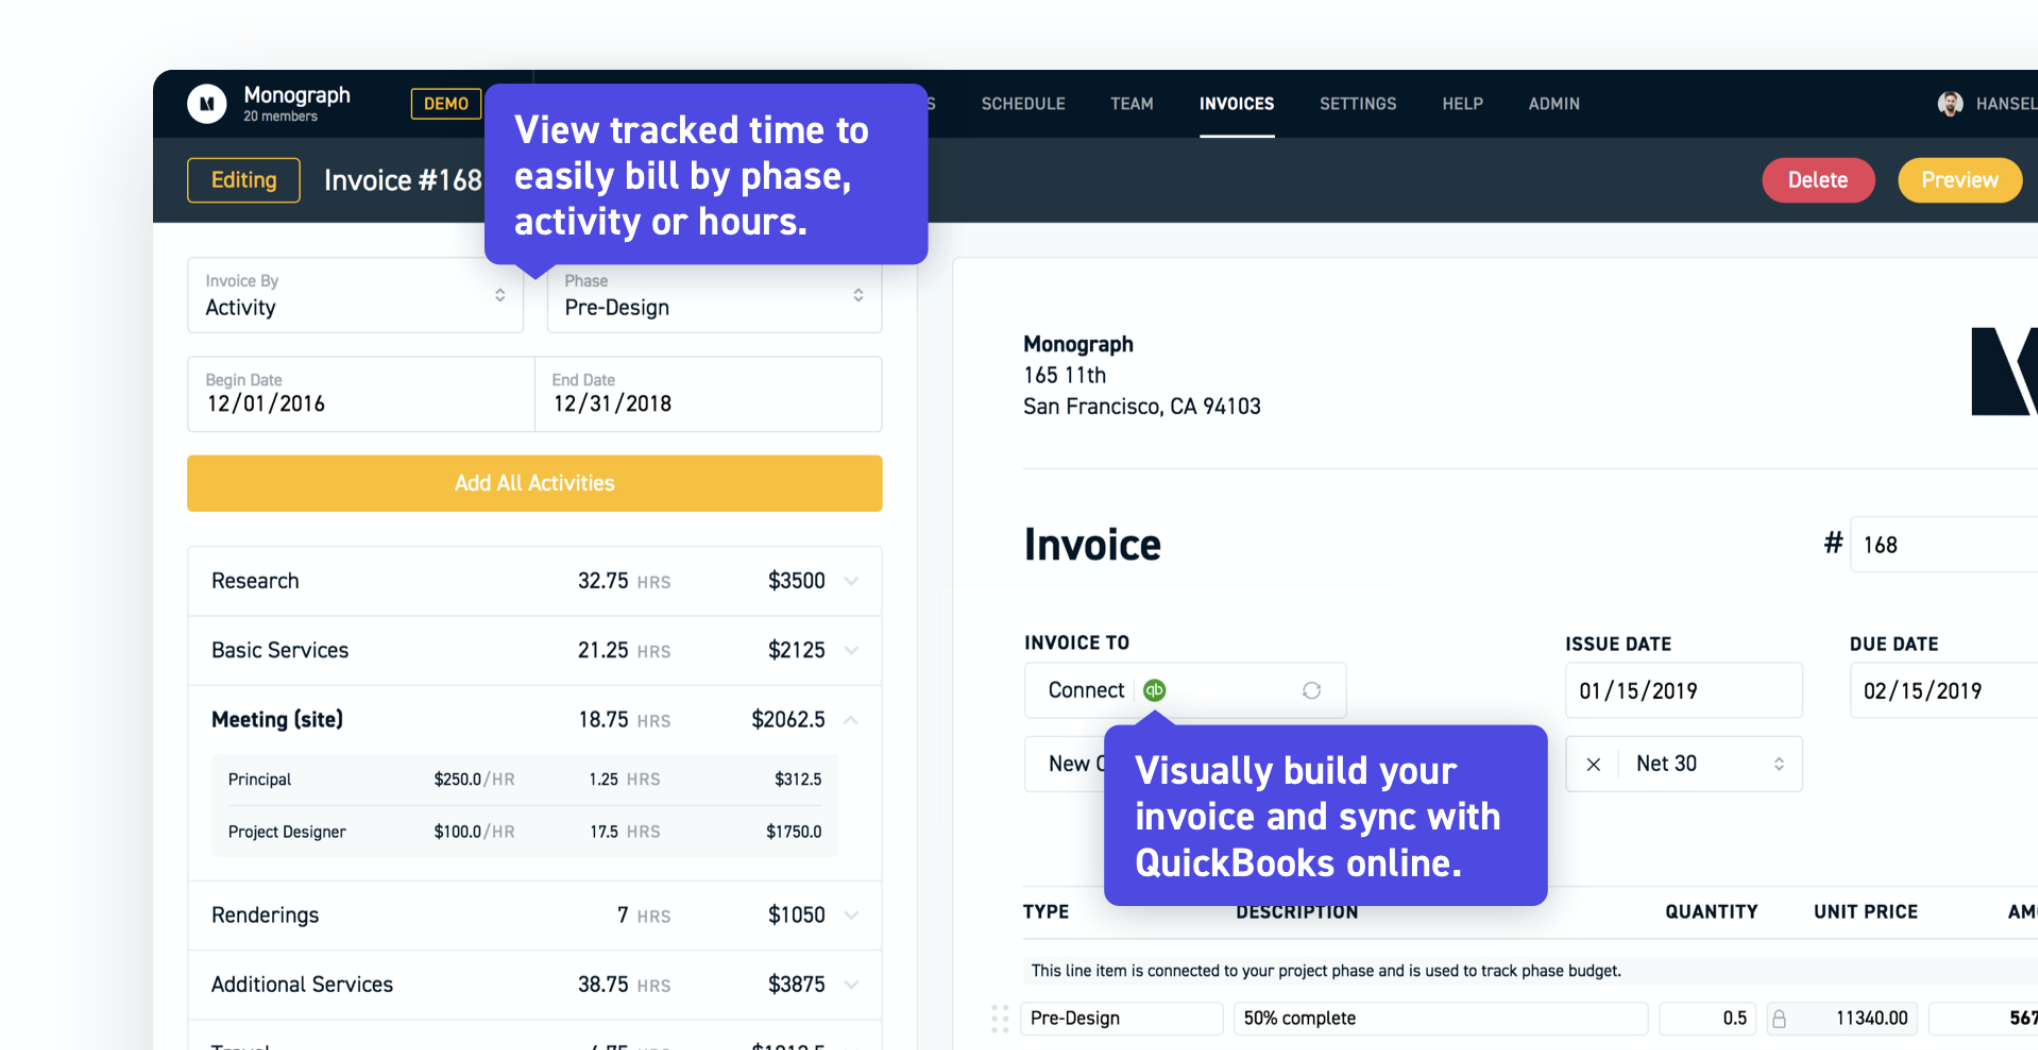 Invoice about